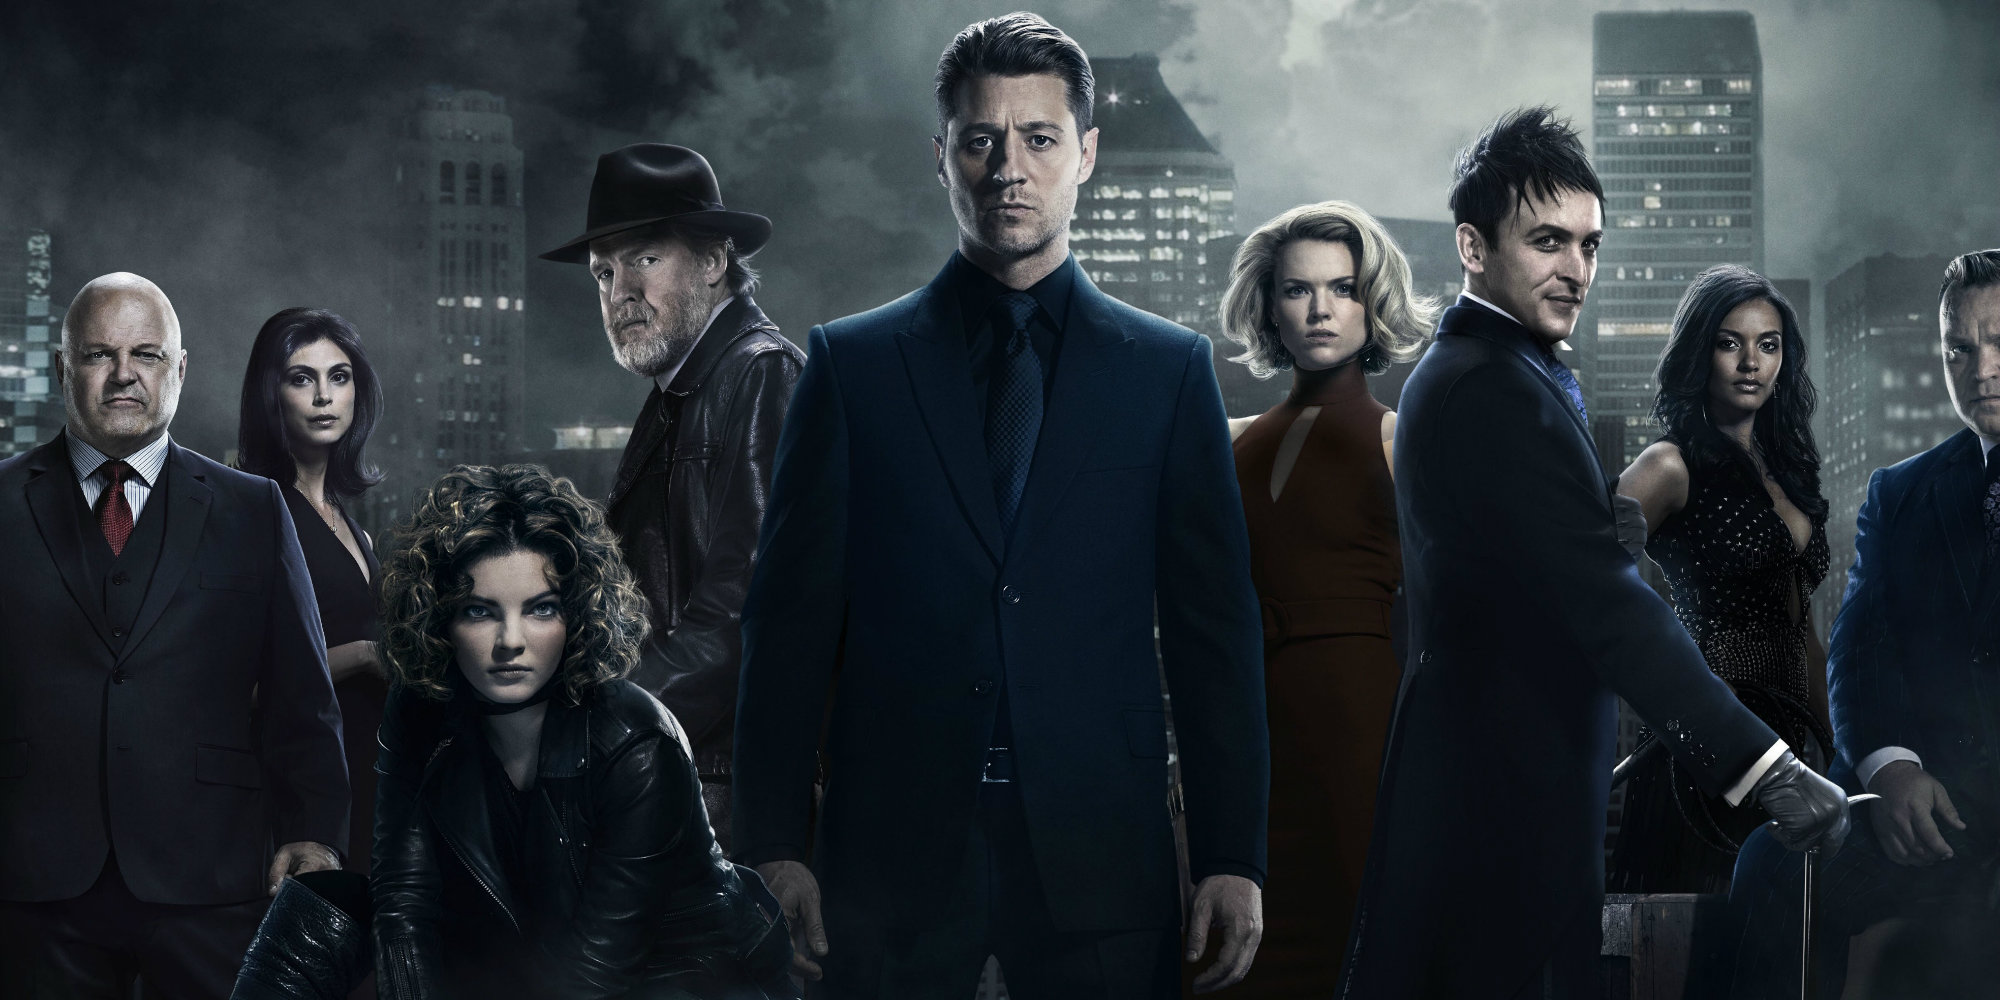 Gotham Actor Wants Cast to Star In A Batman Film